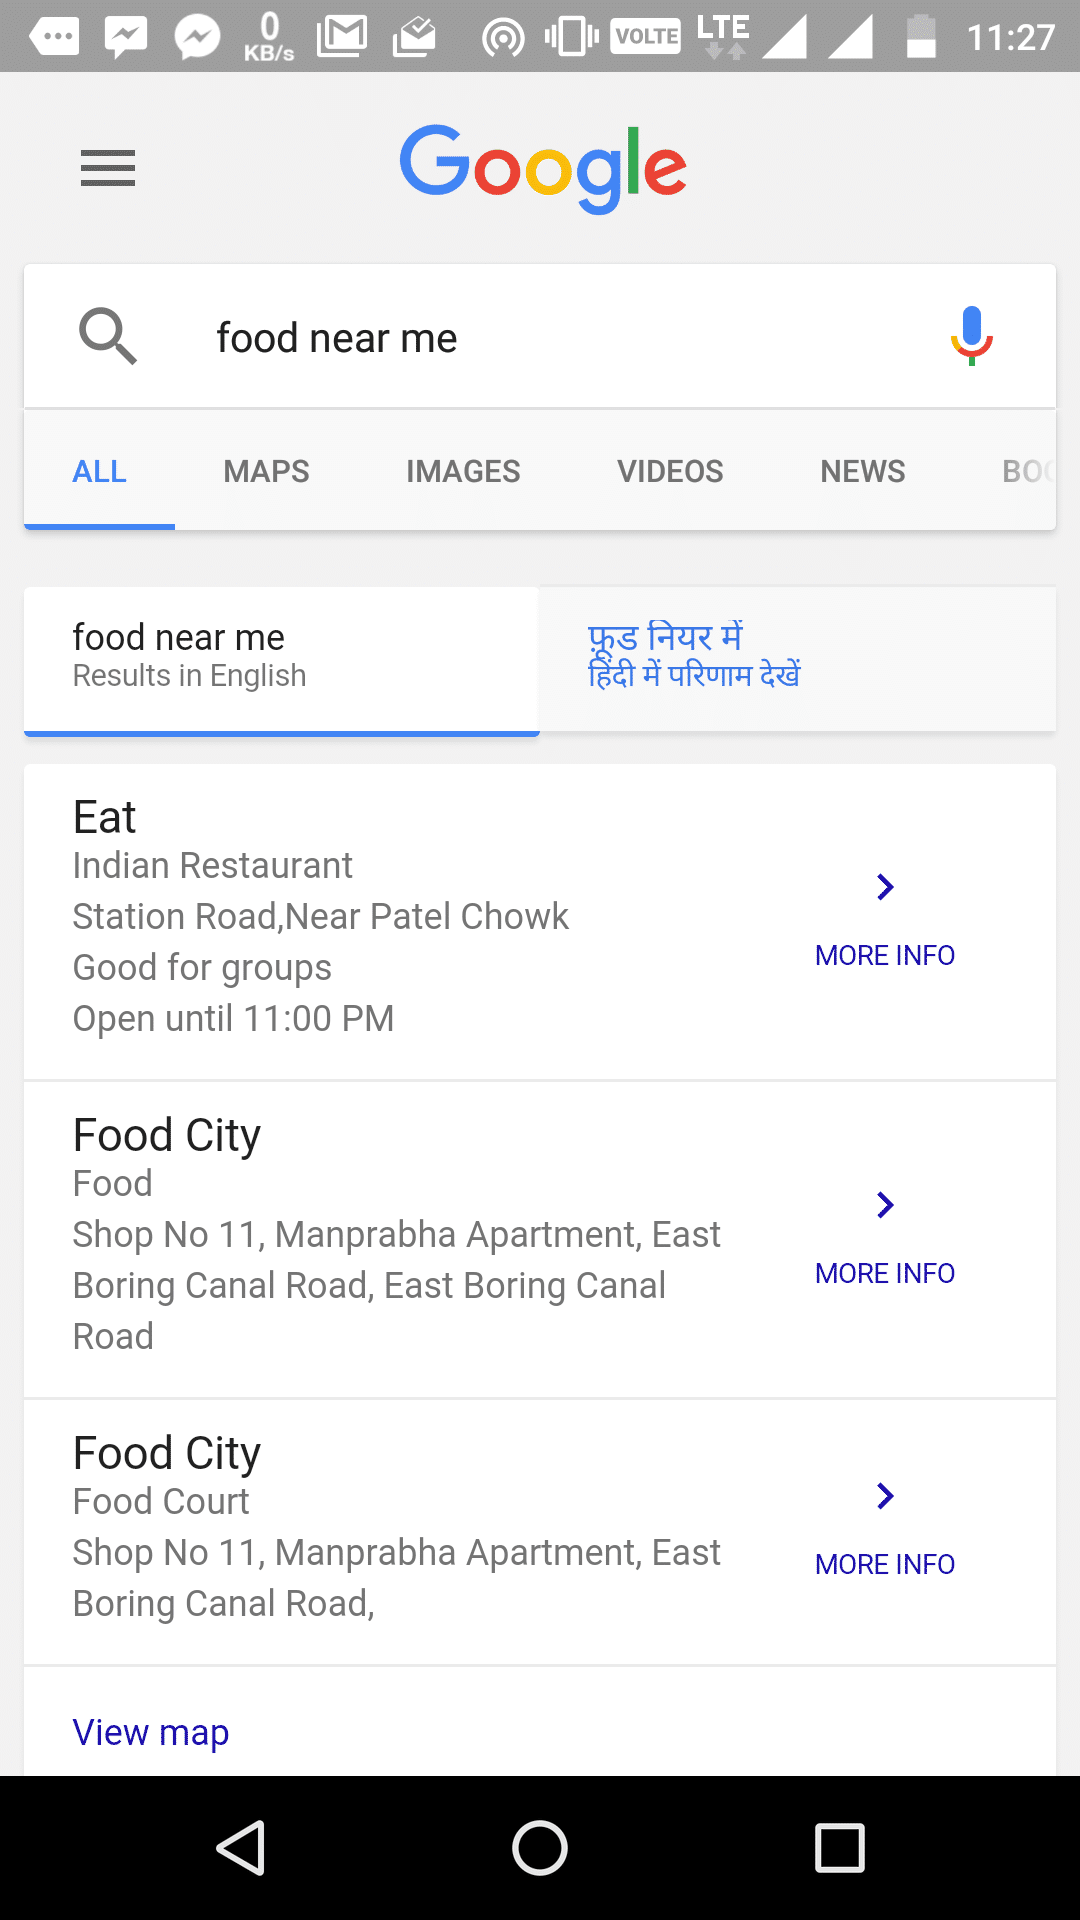 Google Search - Food Near Me - Find Restaurants for Chinese, Mexican, Thai, Fast Food Delivery Near Me